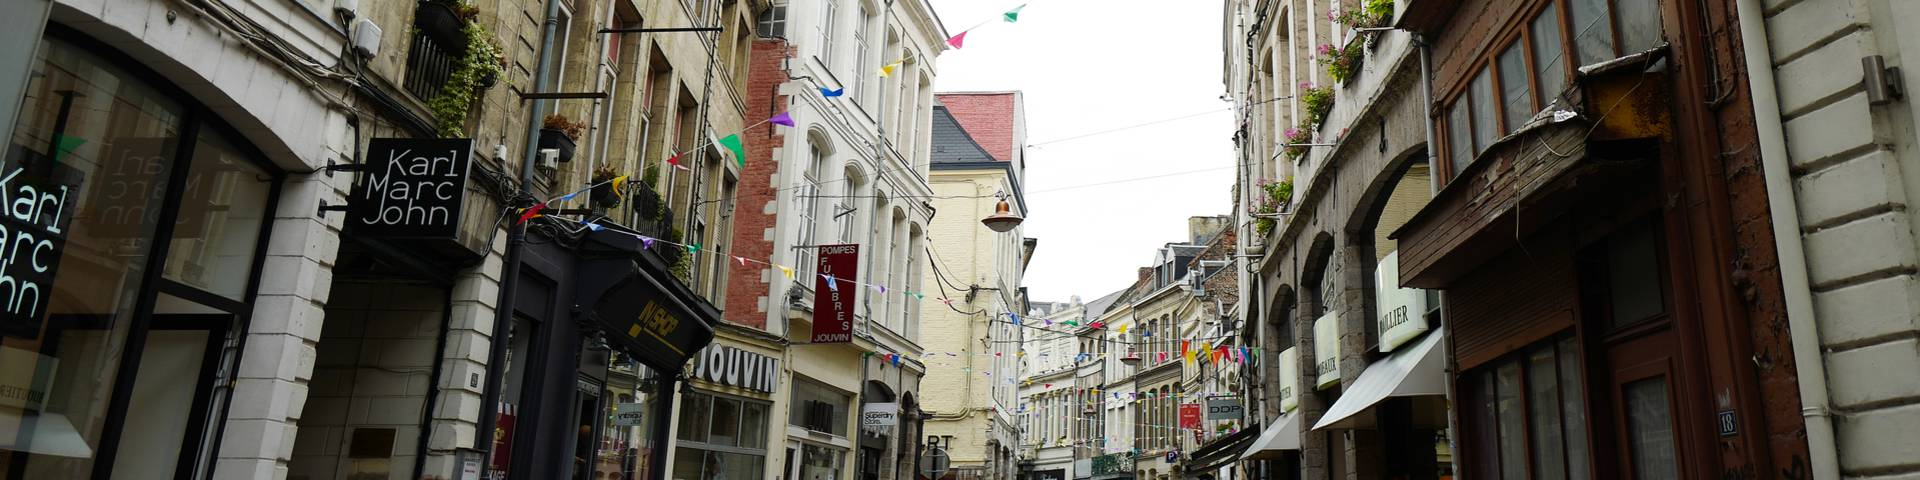 THE essential street of Valenciennes to satisfy his passion for shopping.